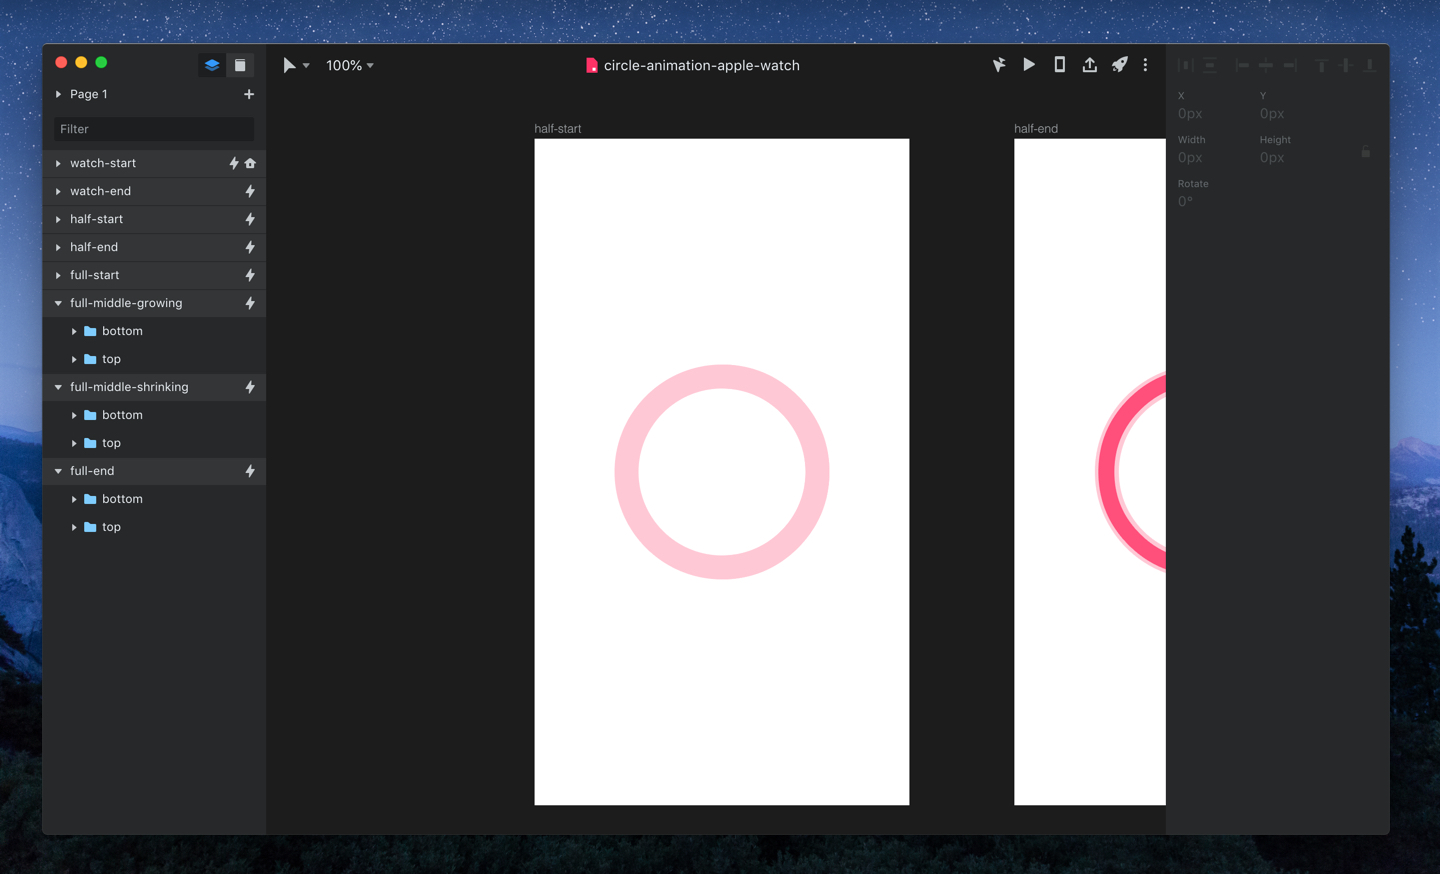 InVision Studio user interface with two artboards visible